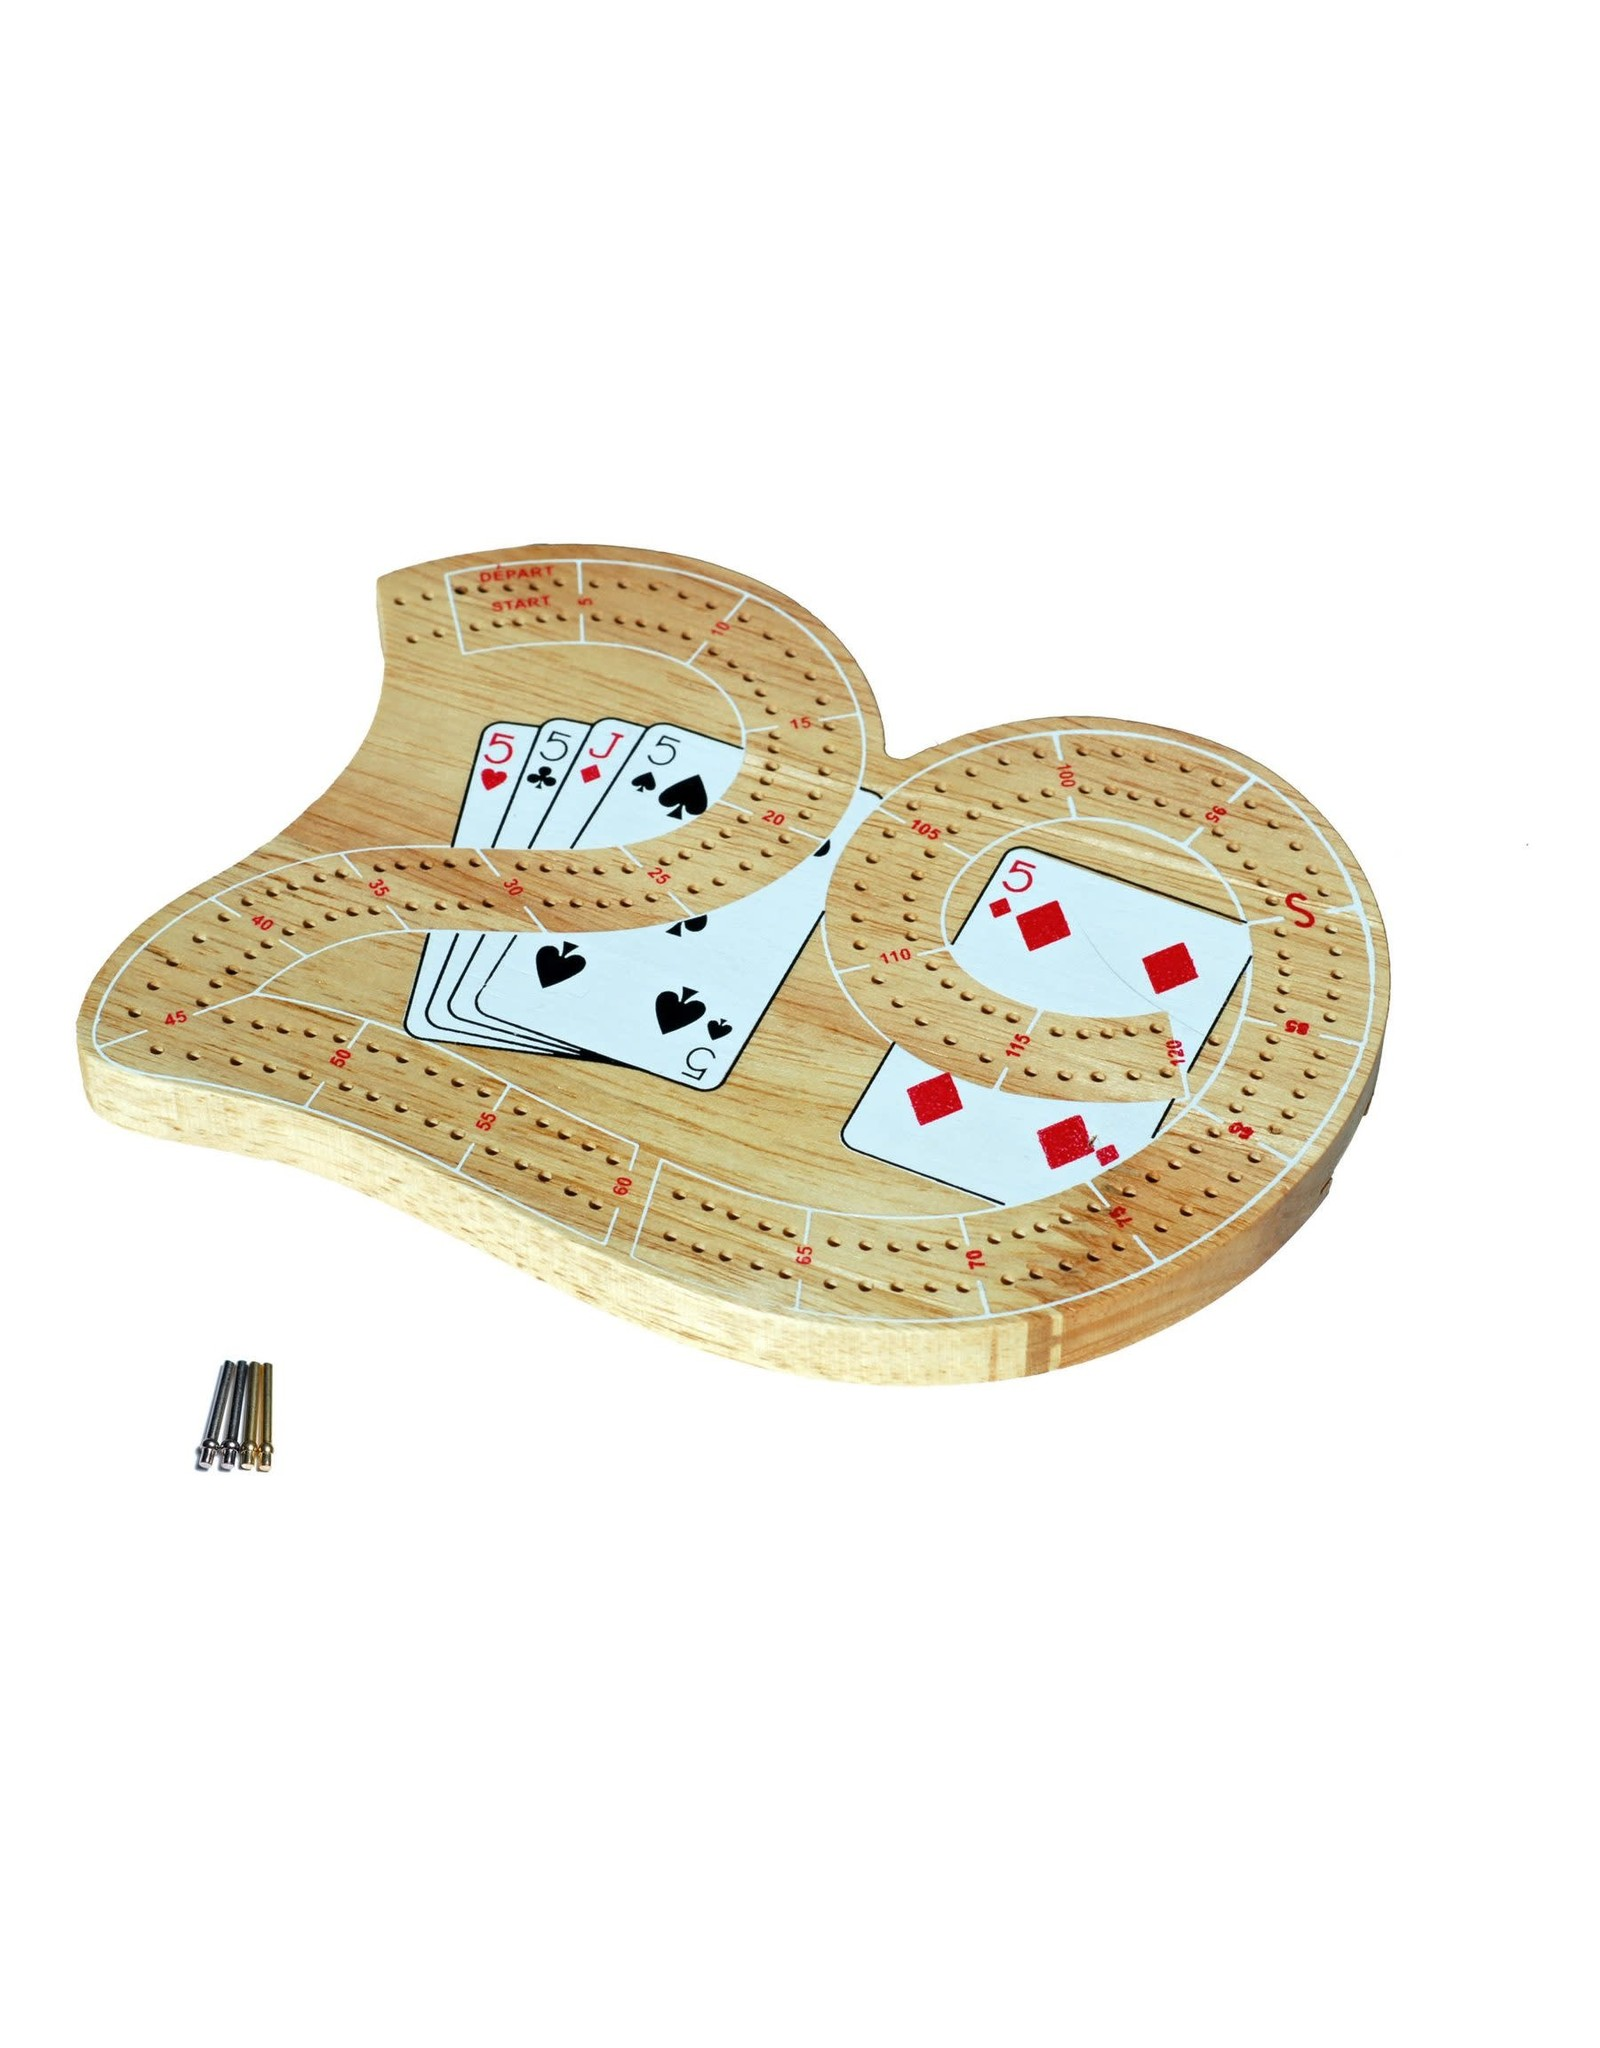 Wood Expressions Mini 29 Cribbage Set - Solid Wood 2 Track Board with Metal Pegs